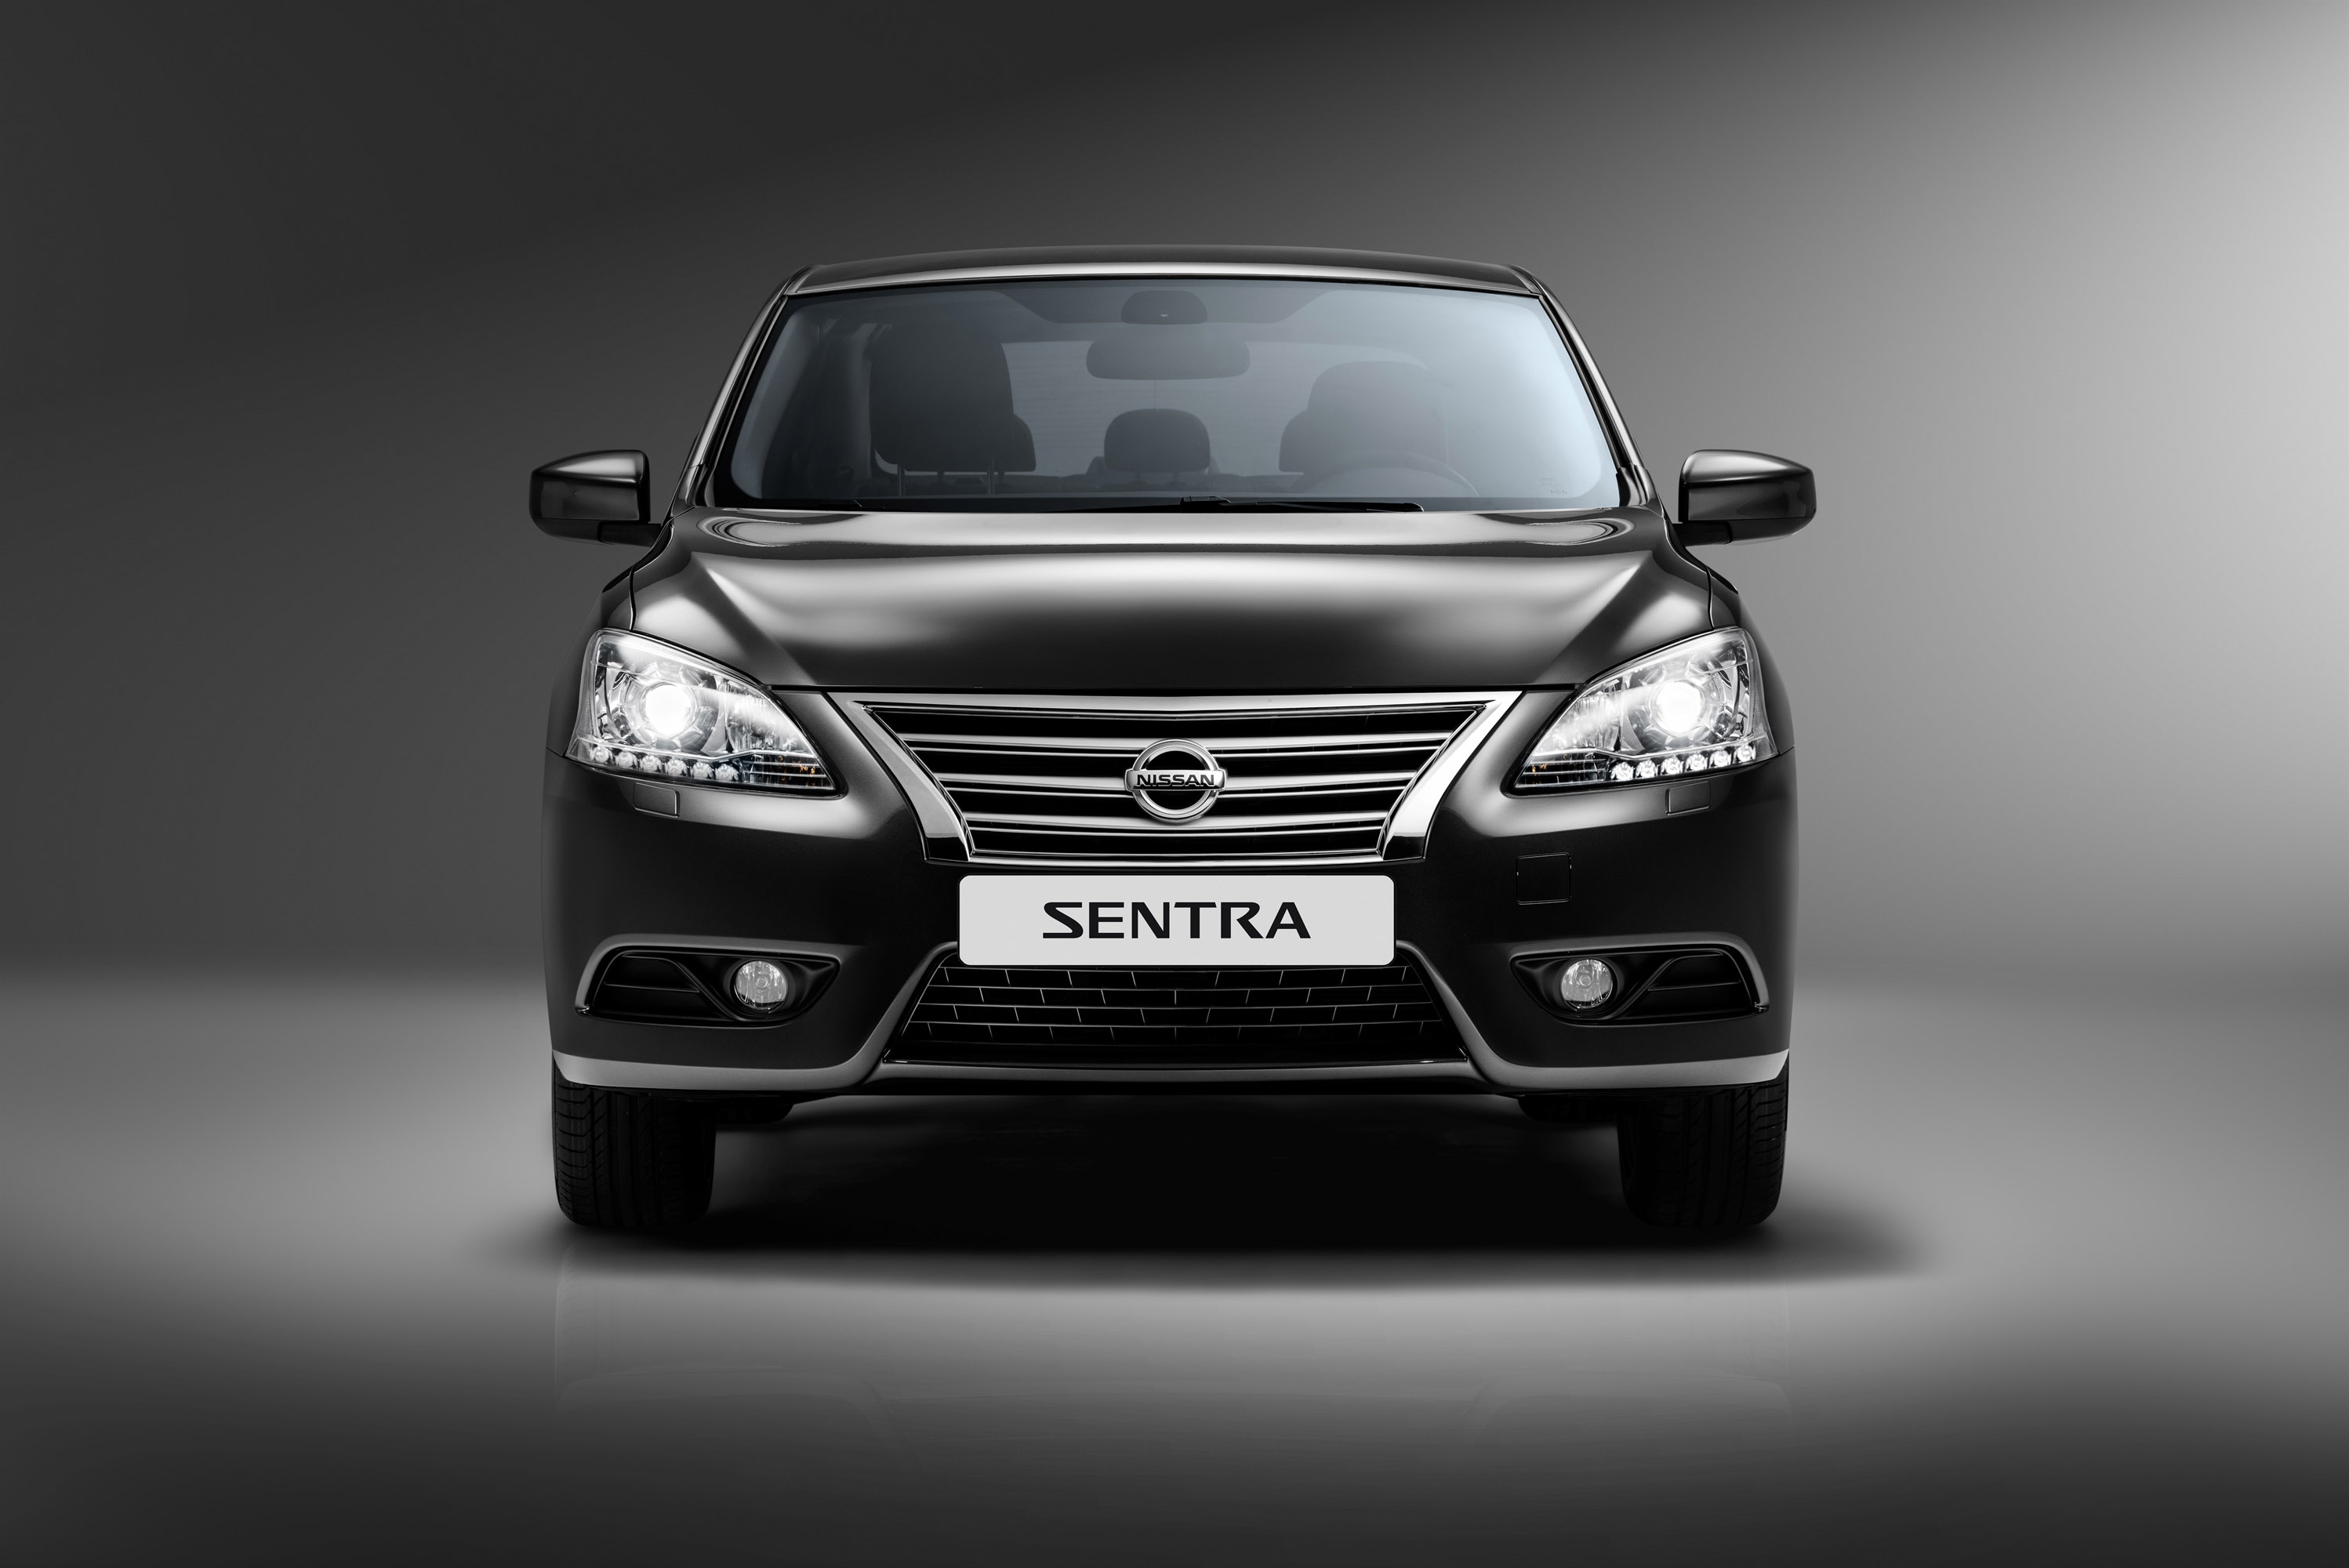 nissan sentra (vi) 2015 wallpaper